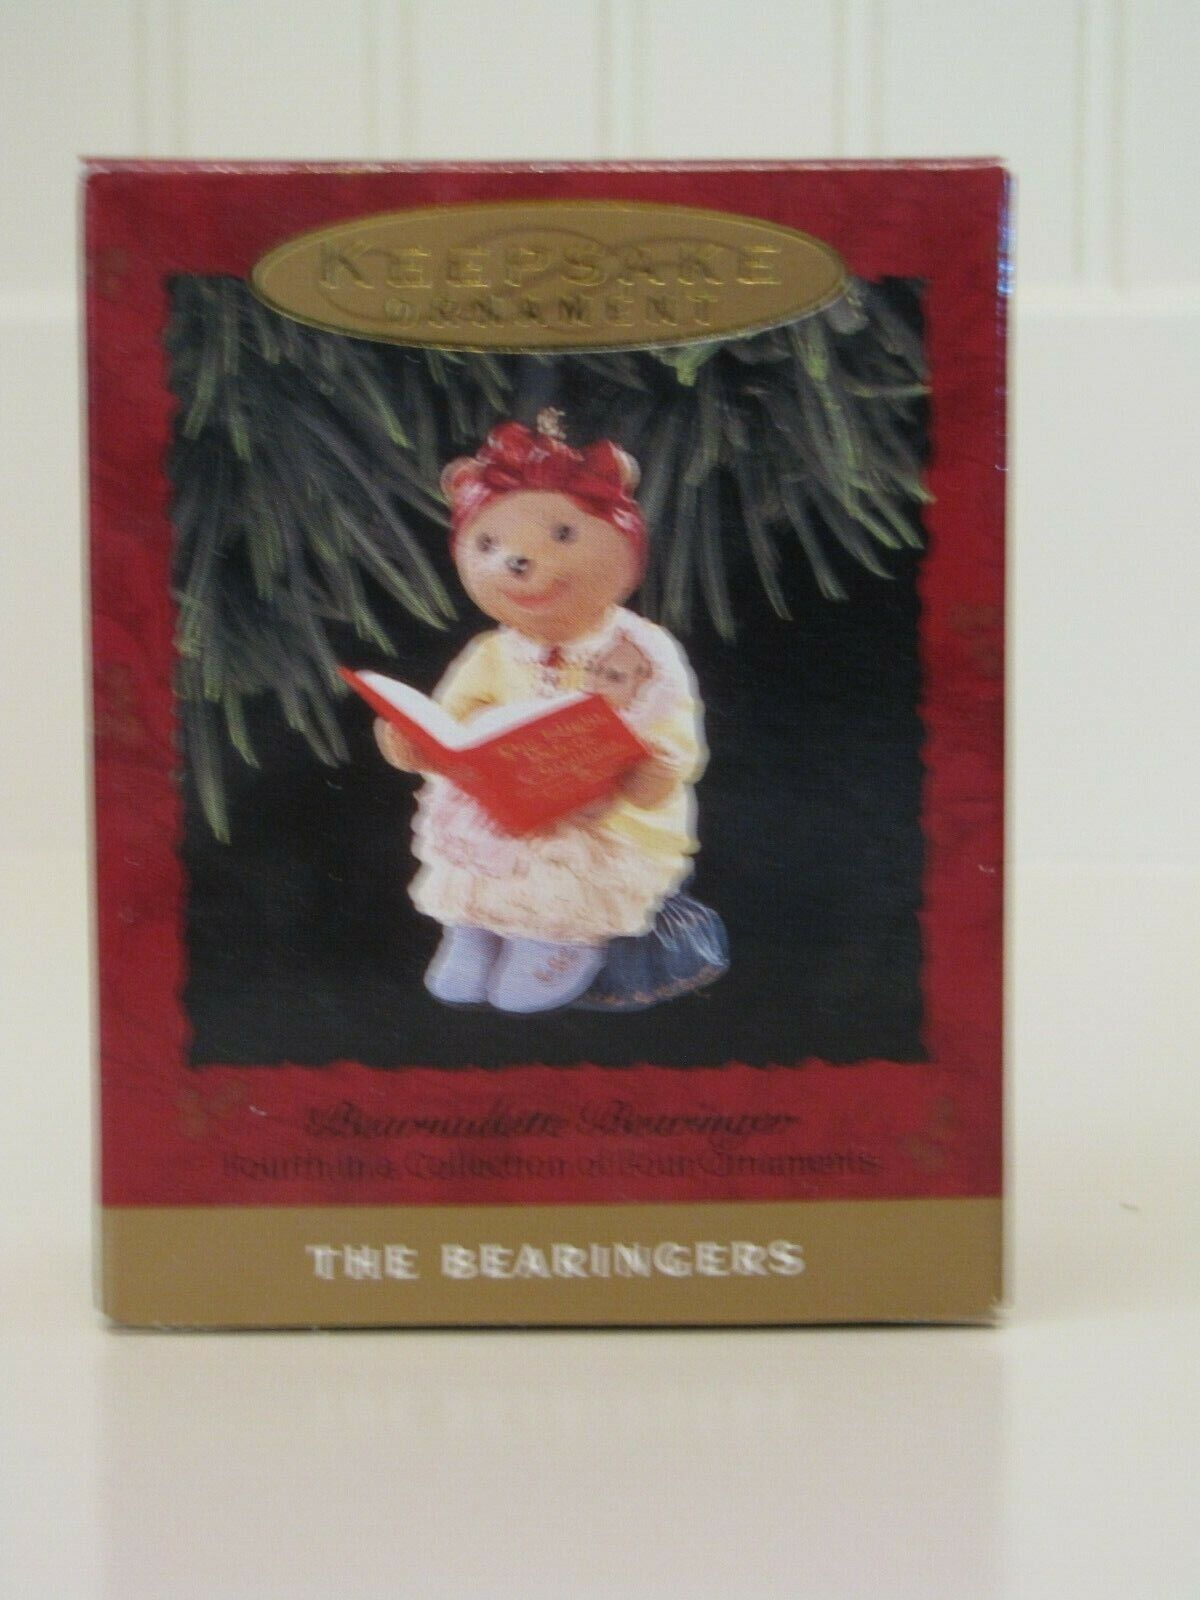 (5) Hallmark Keepsake The Bearingers Ornaments 1993 Без бренда - фотография #2